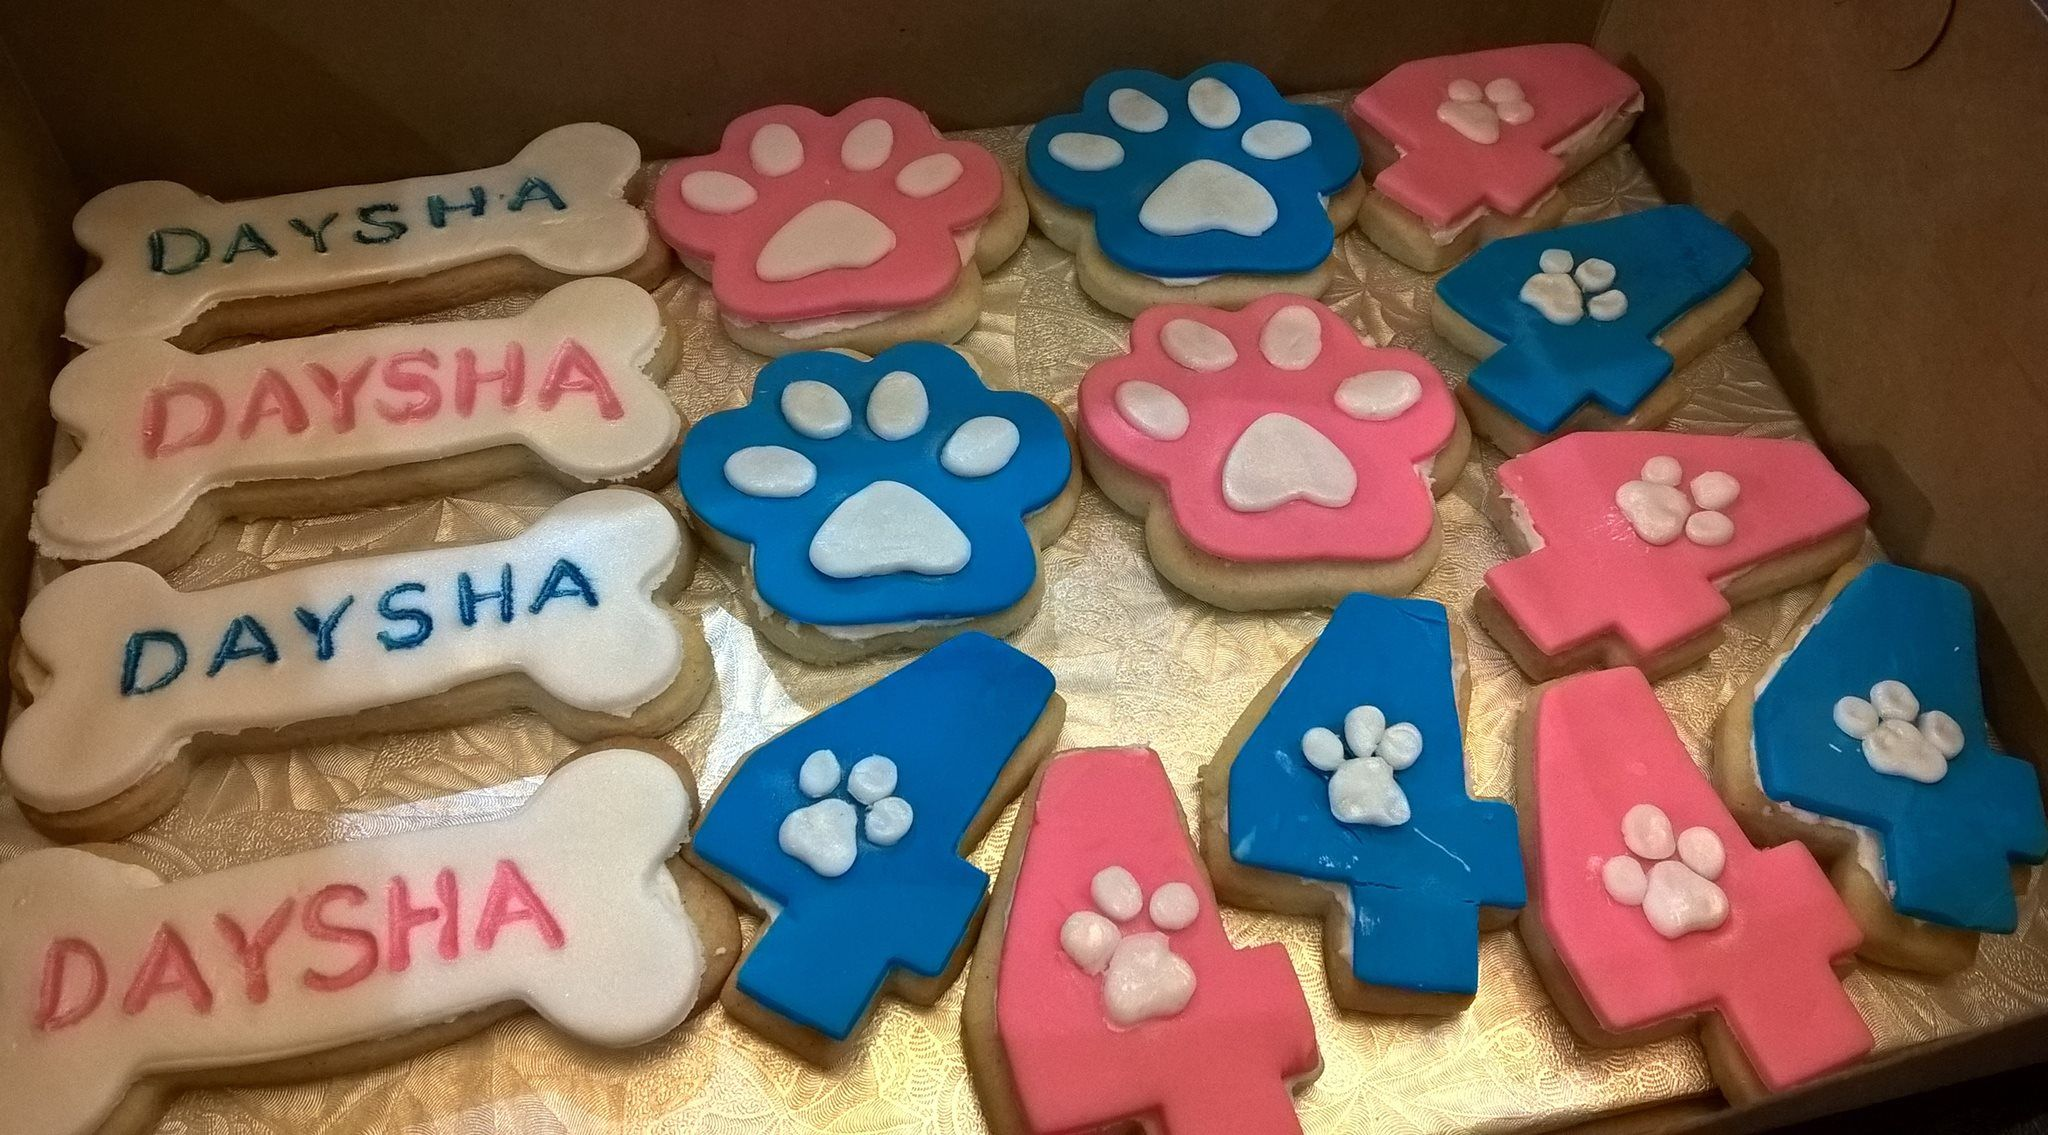 Paw Patrol Girl's Sugar Cookies with fondant, butter cream and airbrushed with white pearl